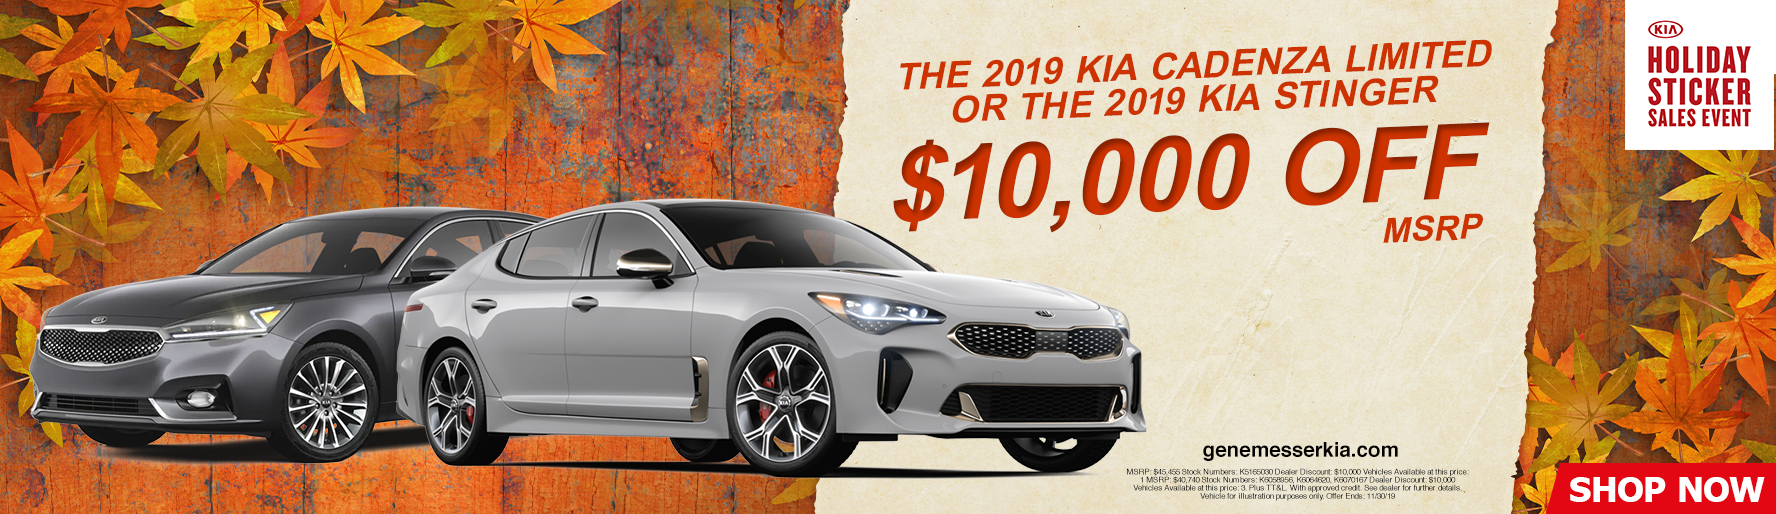 2019 Kia Cadenza Limited or 2019 Kia Stinger